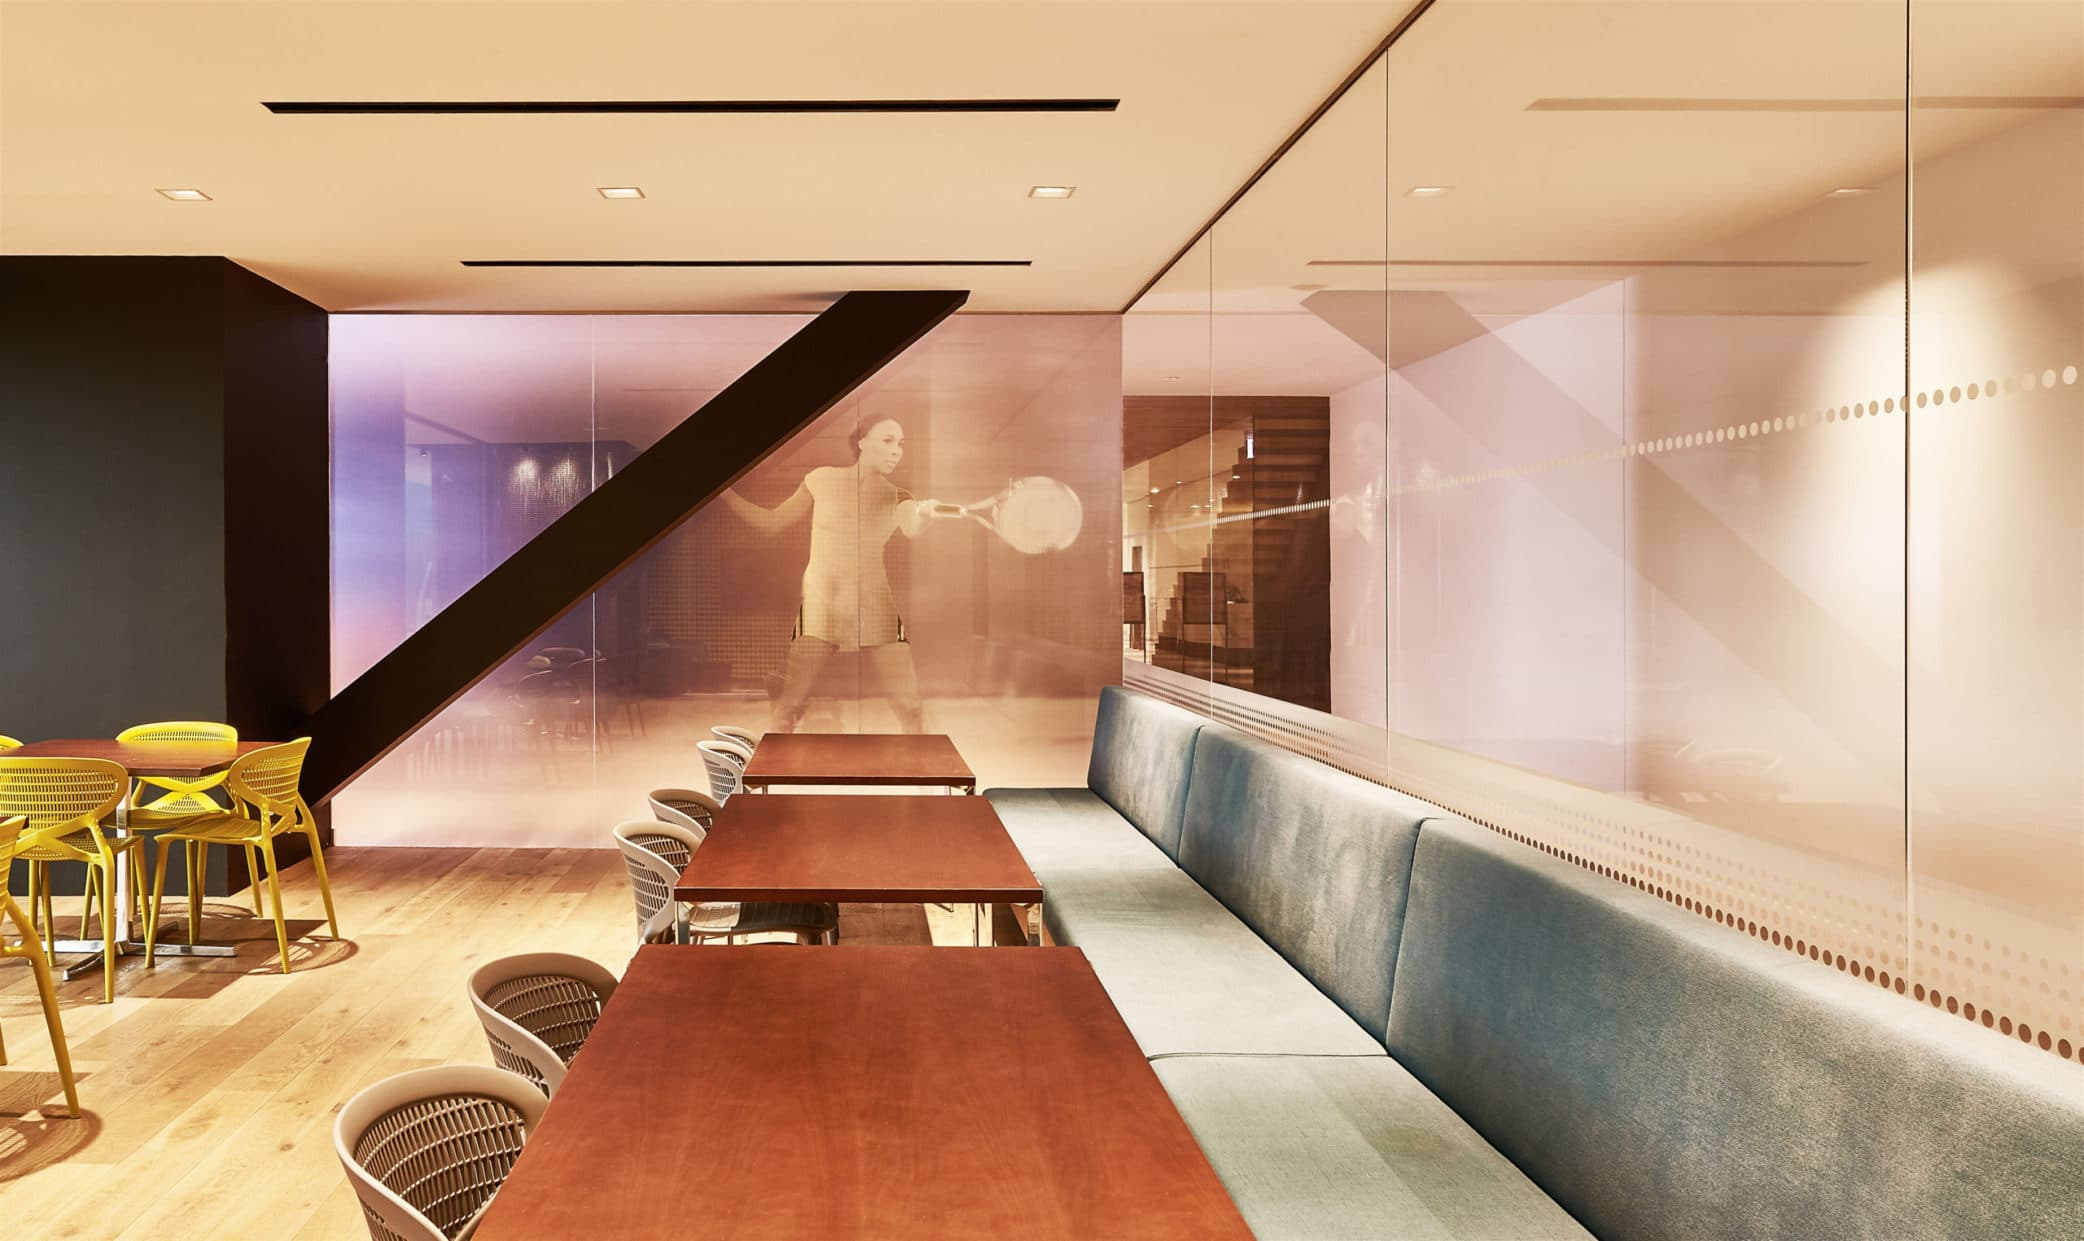 Tennis Lounge at Midtown Athletic Club | Interior Area 2 | Chicago, IL | Hospitality | Interior Designers